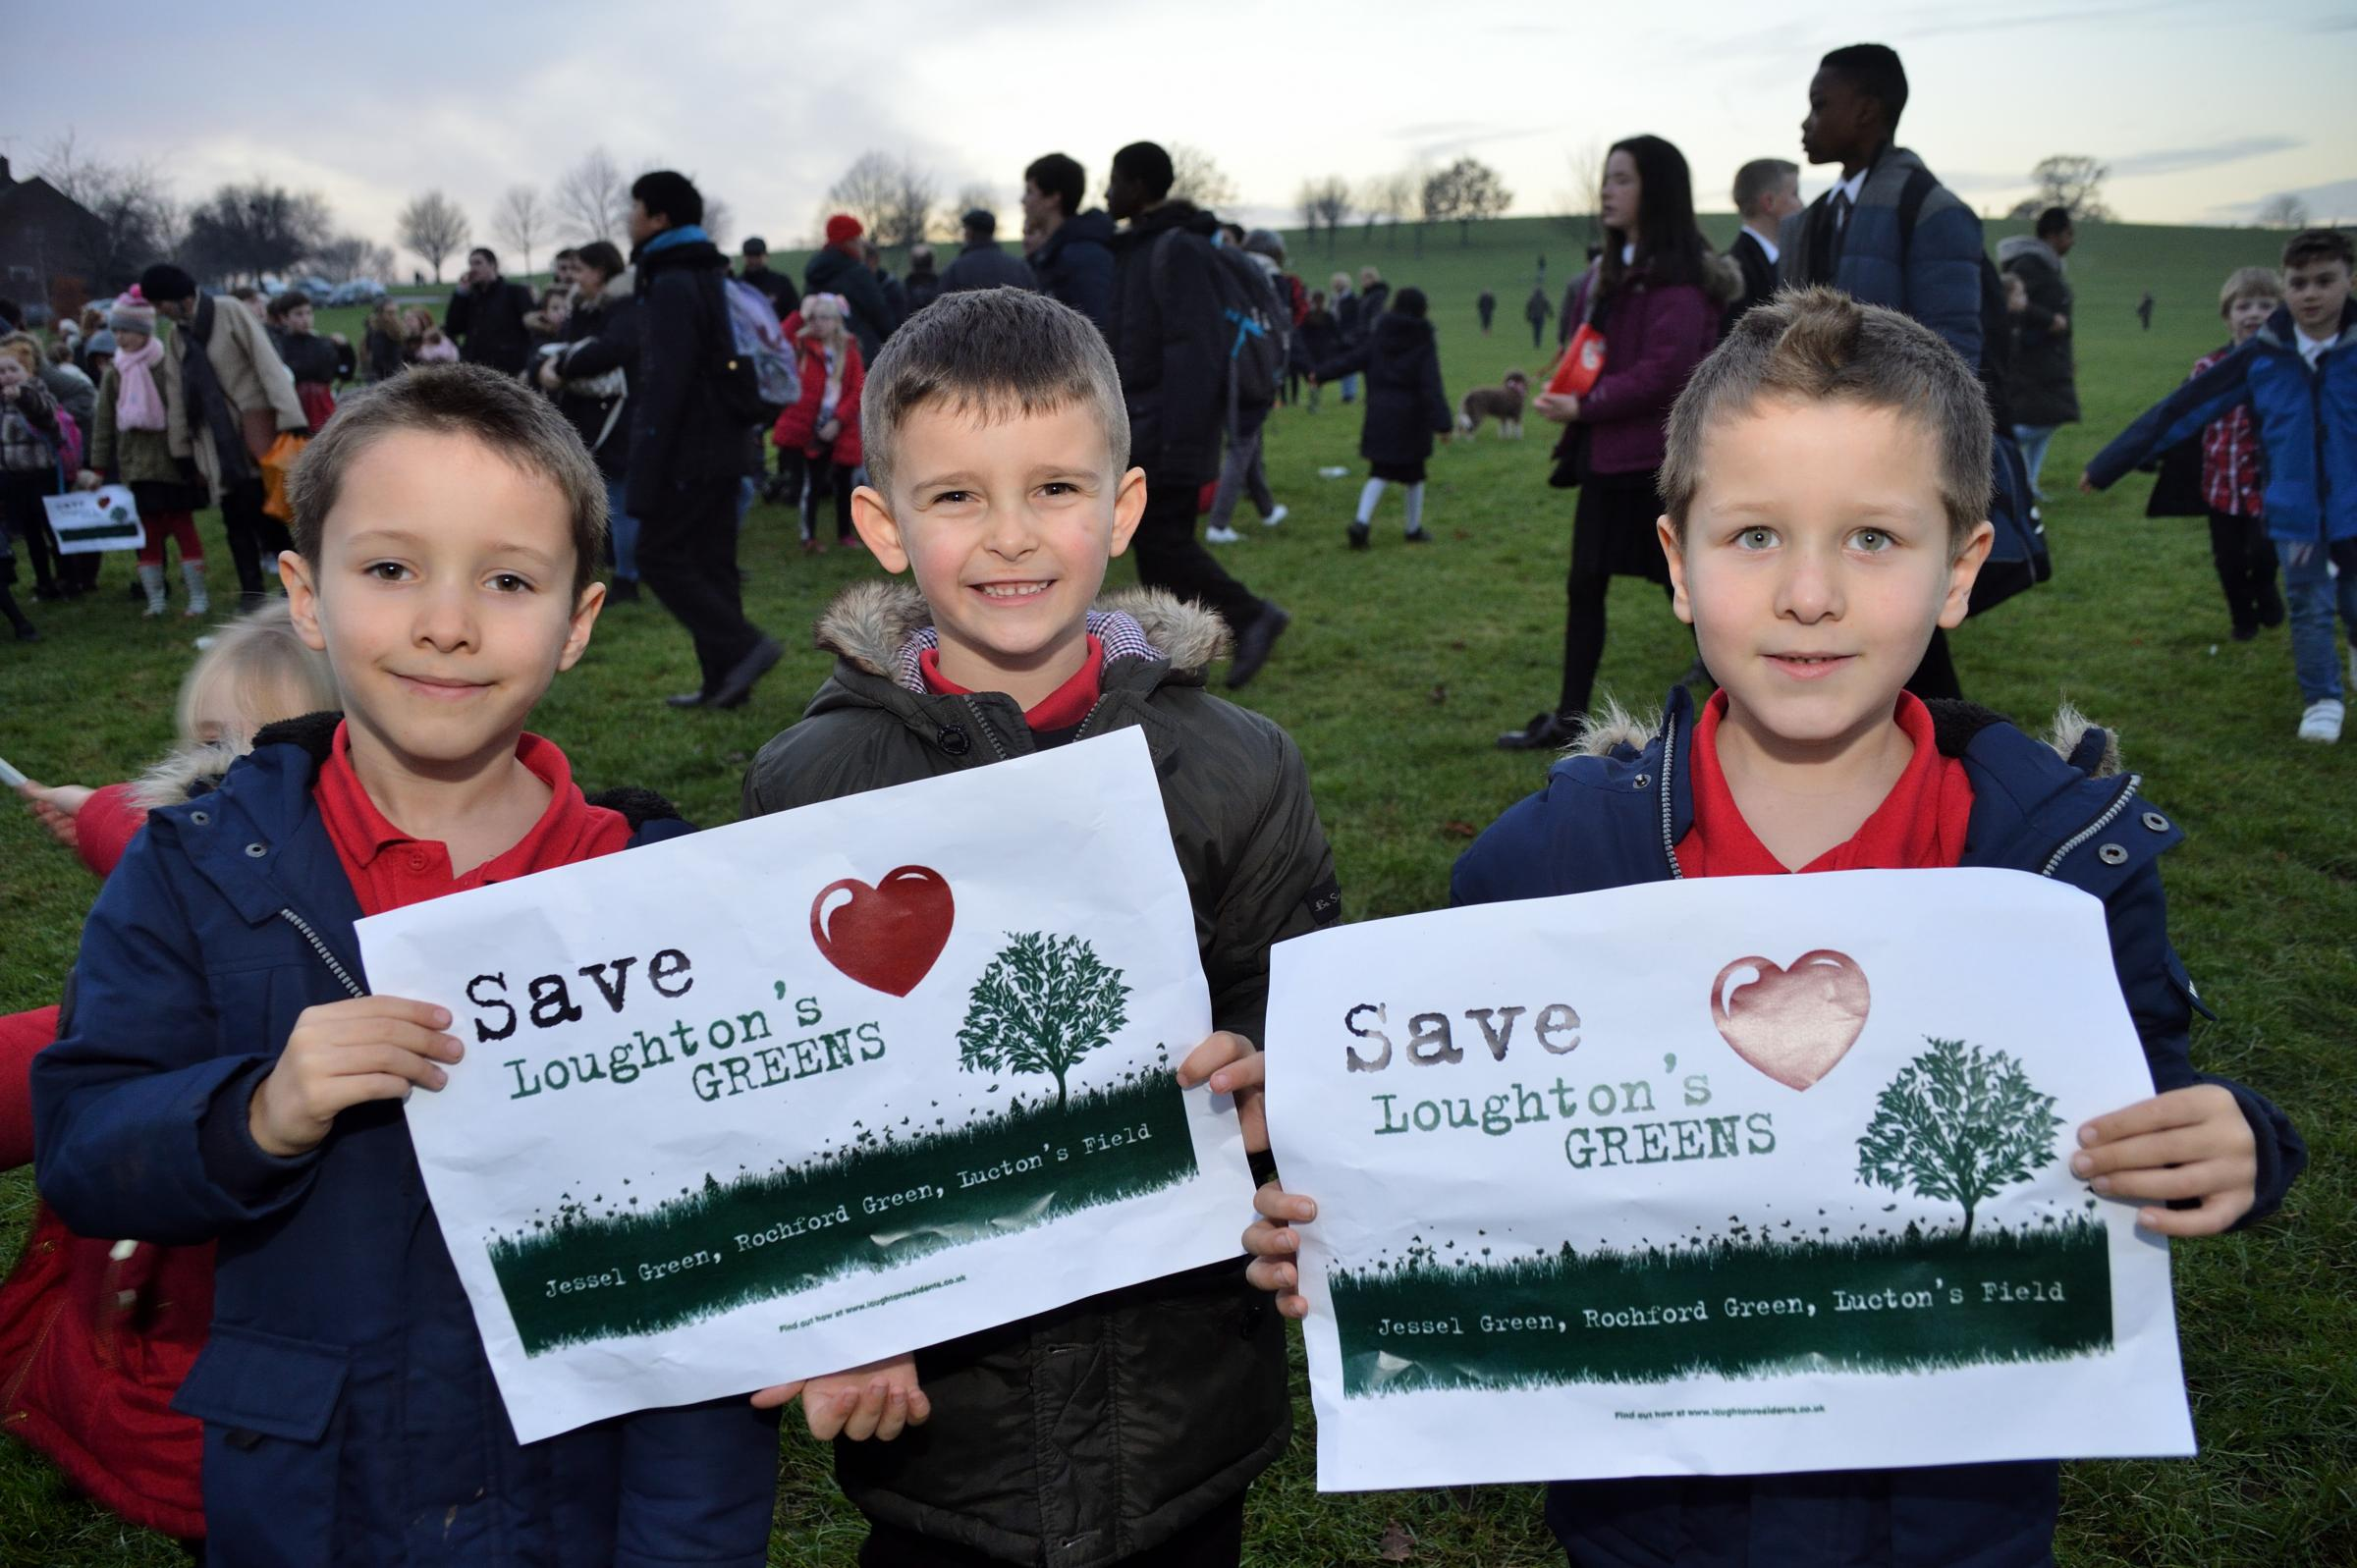 Local residents are campaigning to save Jessel Green in Debden/Loughton from development. Essex (19/12/2017) EL91760_14.